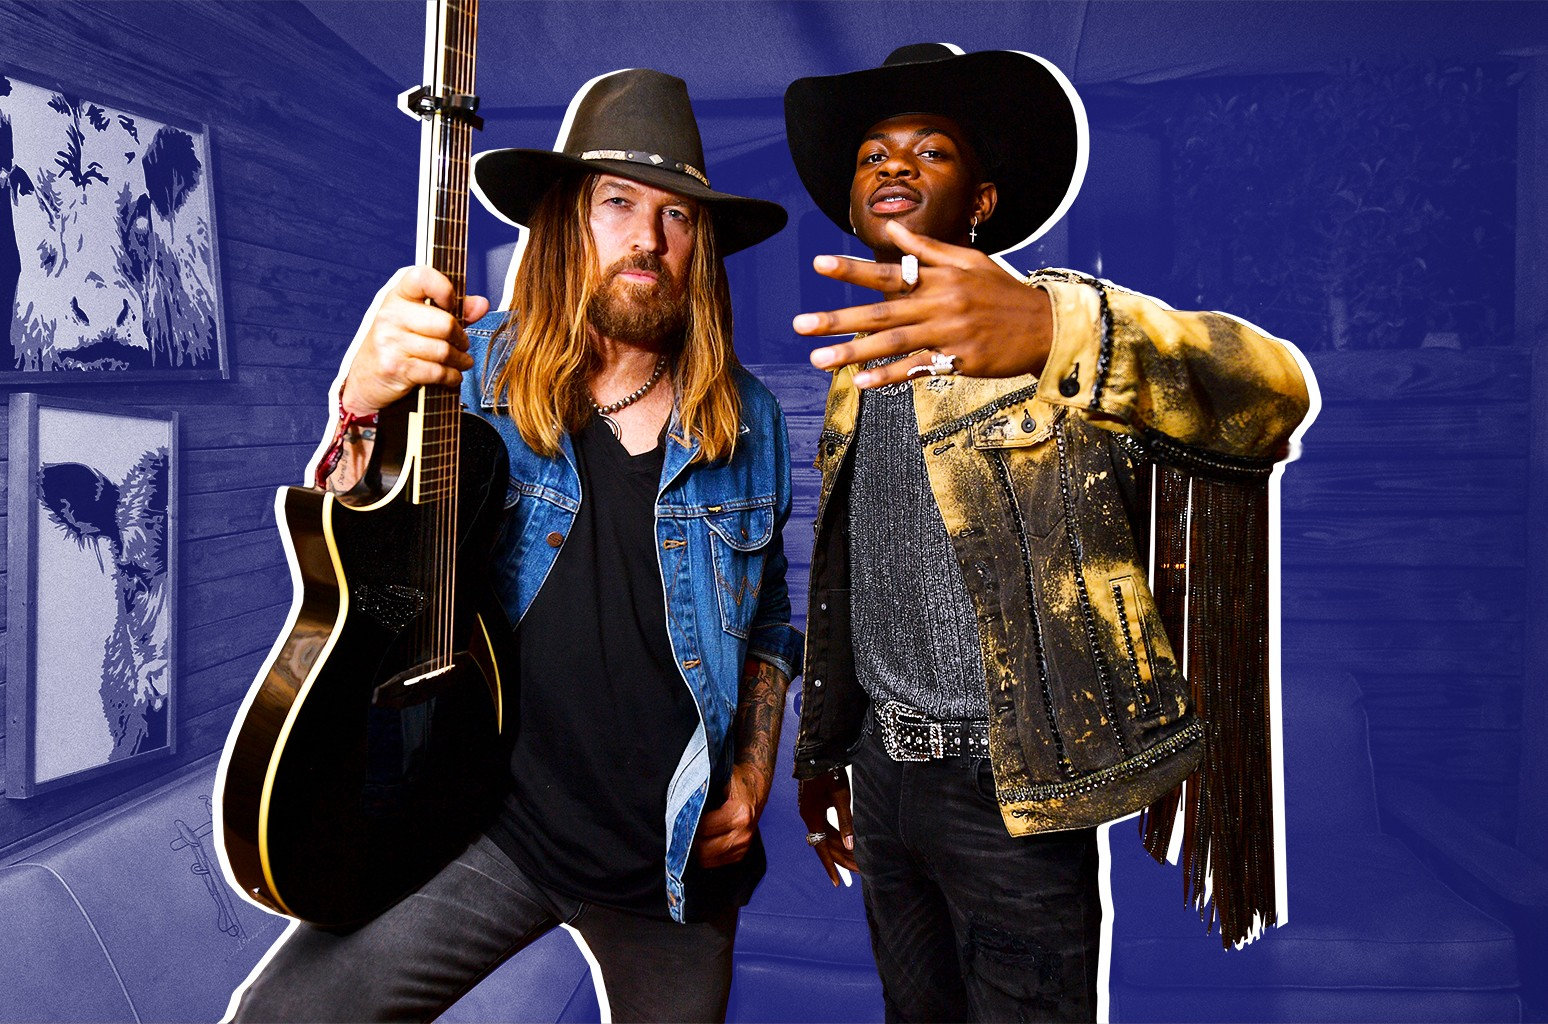 Billy Ray Cyrus (left) and Lil Nas X